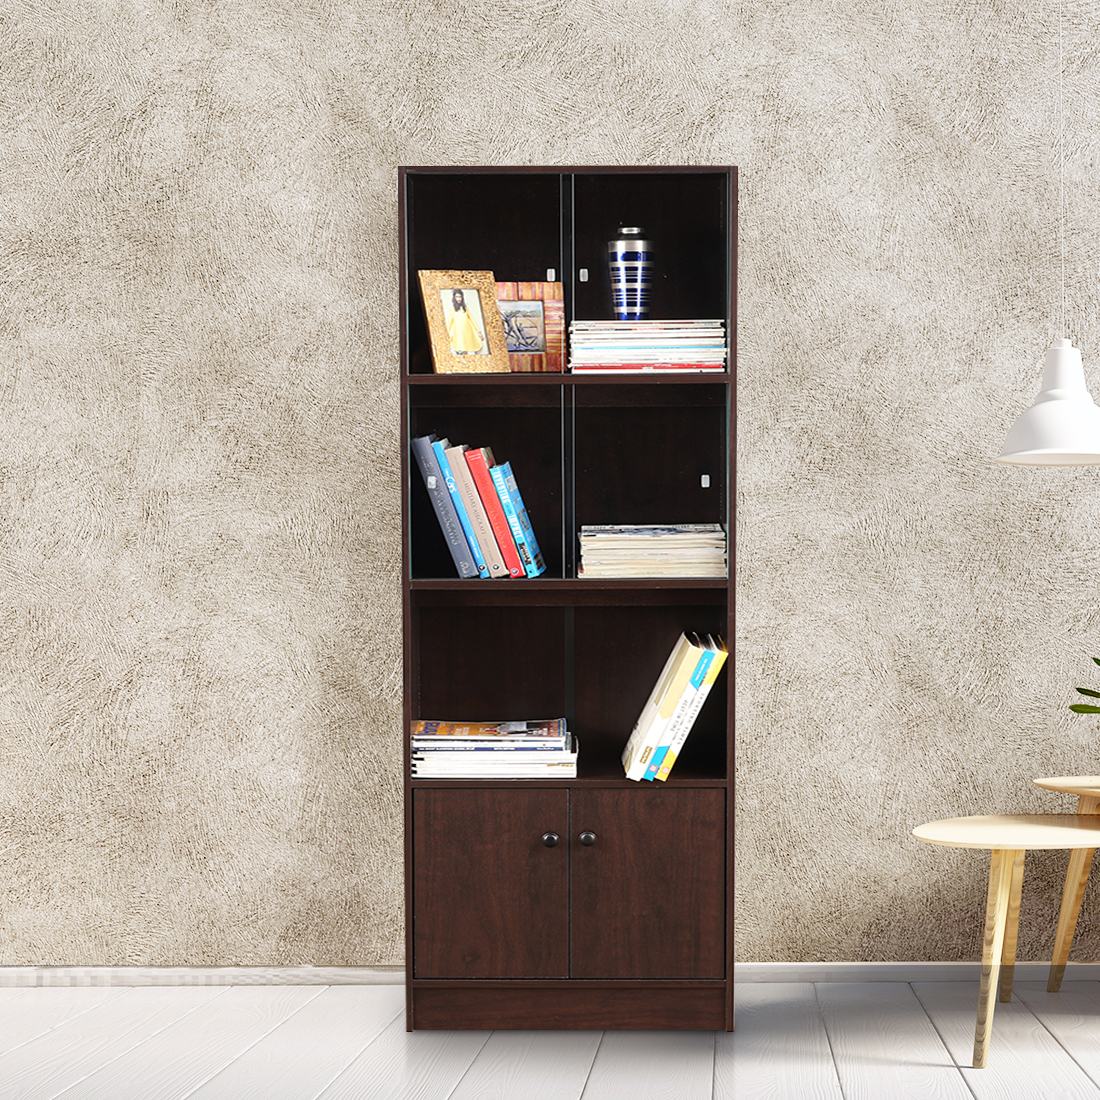 Crony Engineered Wood Book Shelf in Wenge Colour by HomeTown